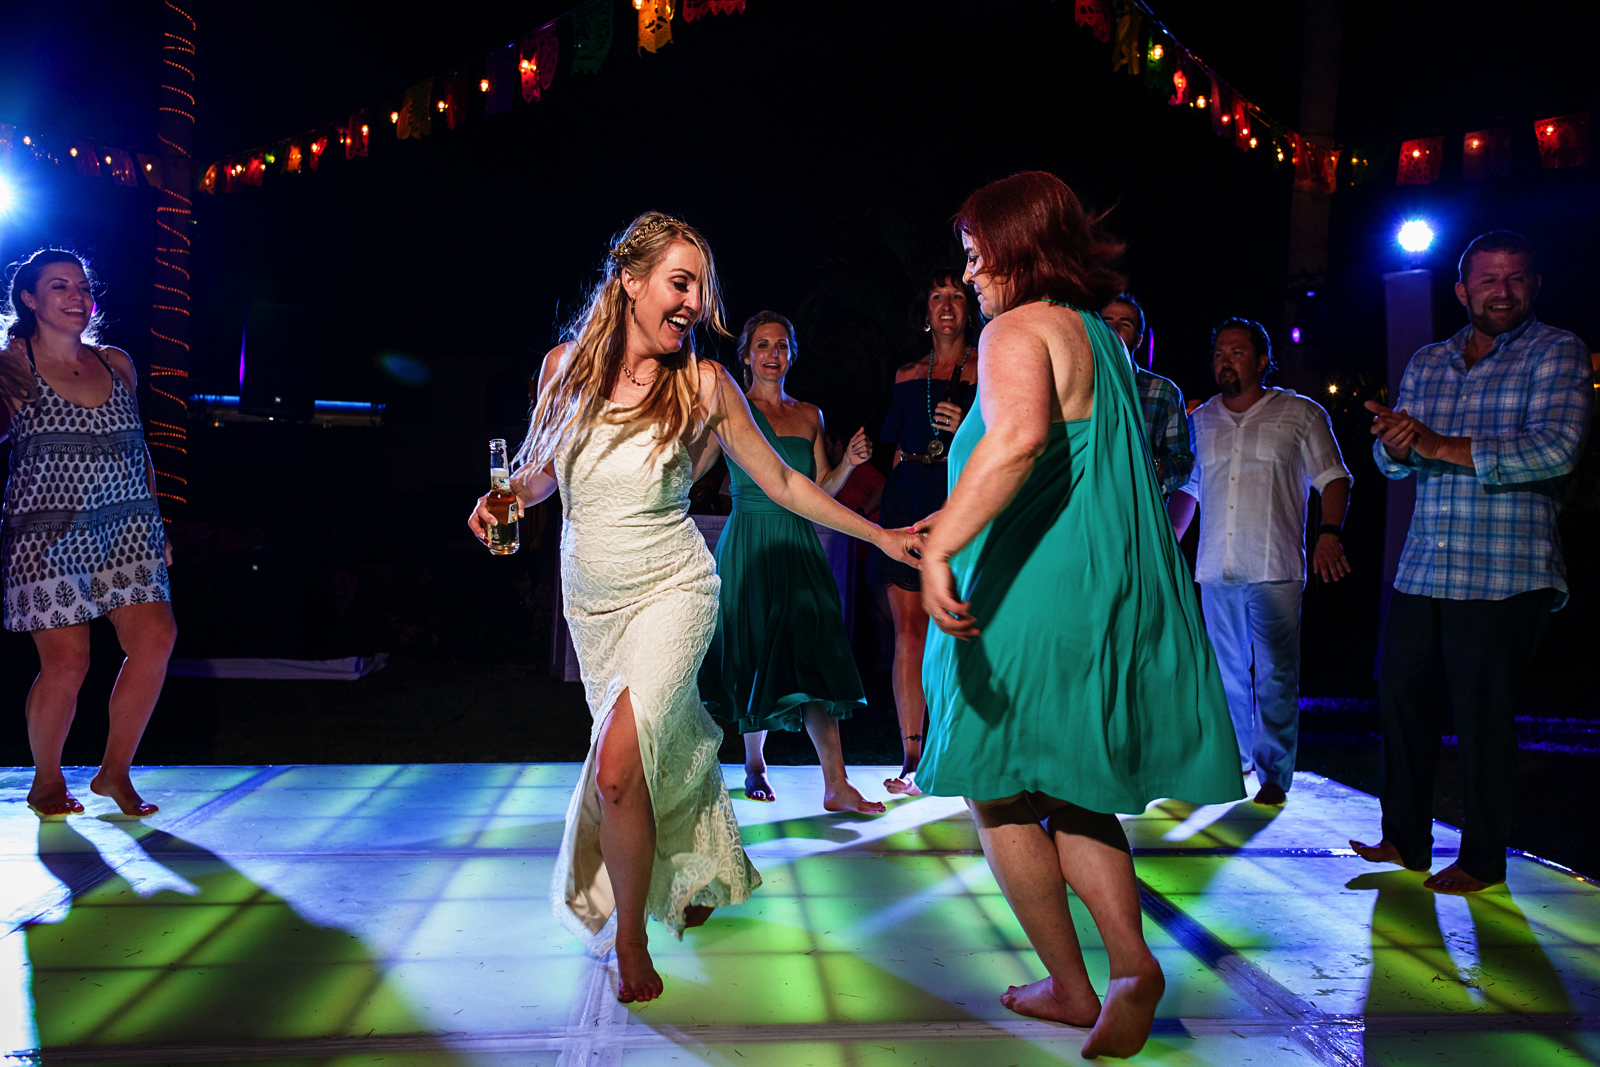 Bride and female wedding guest dancing in the middle of a circle of other guests